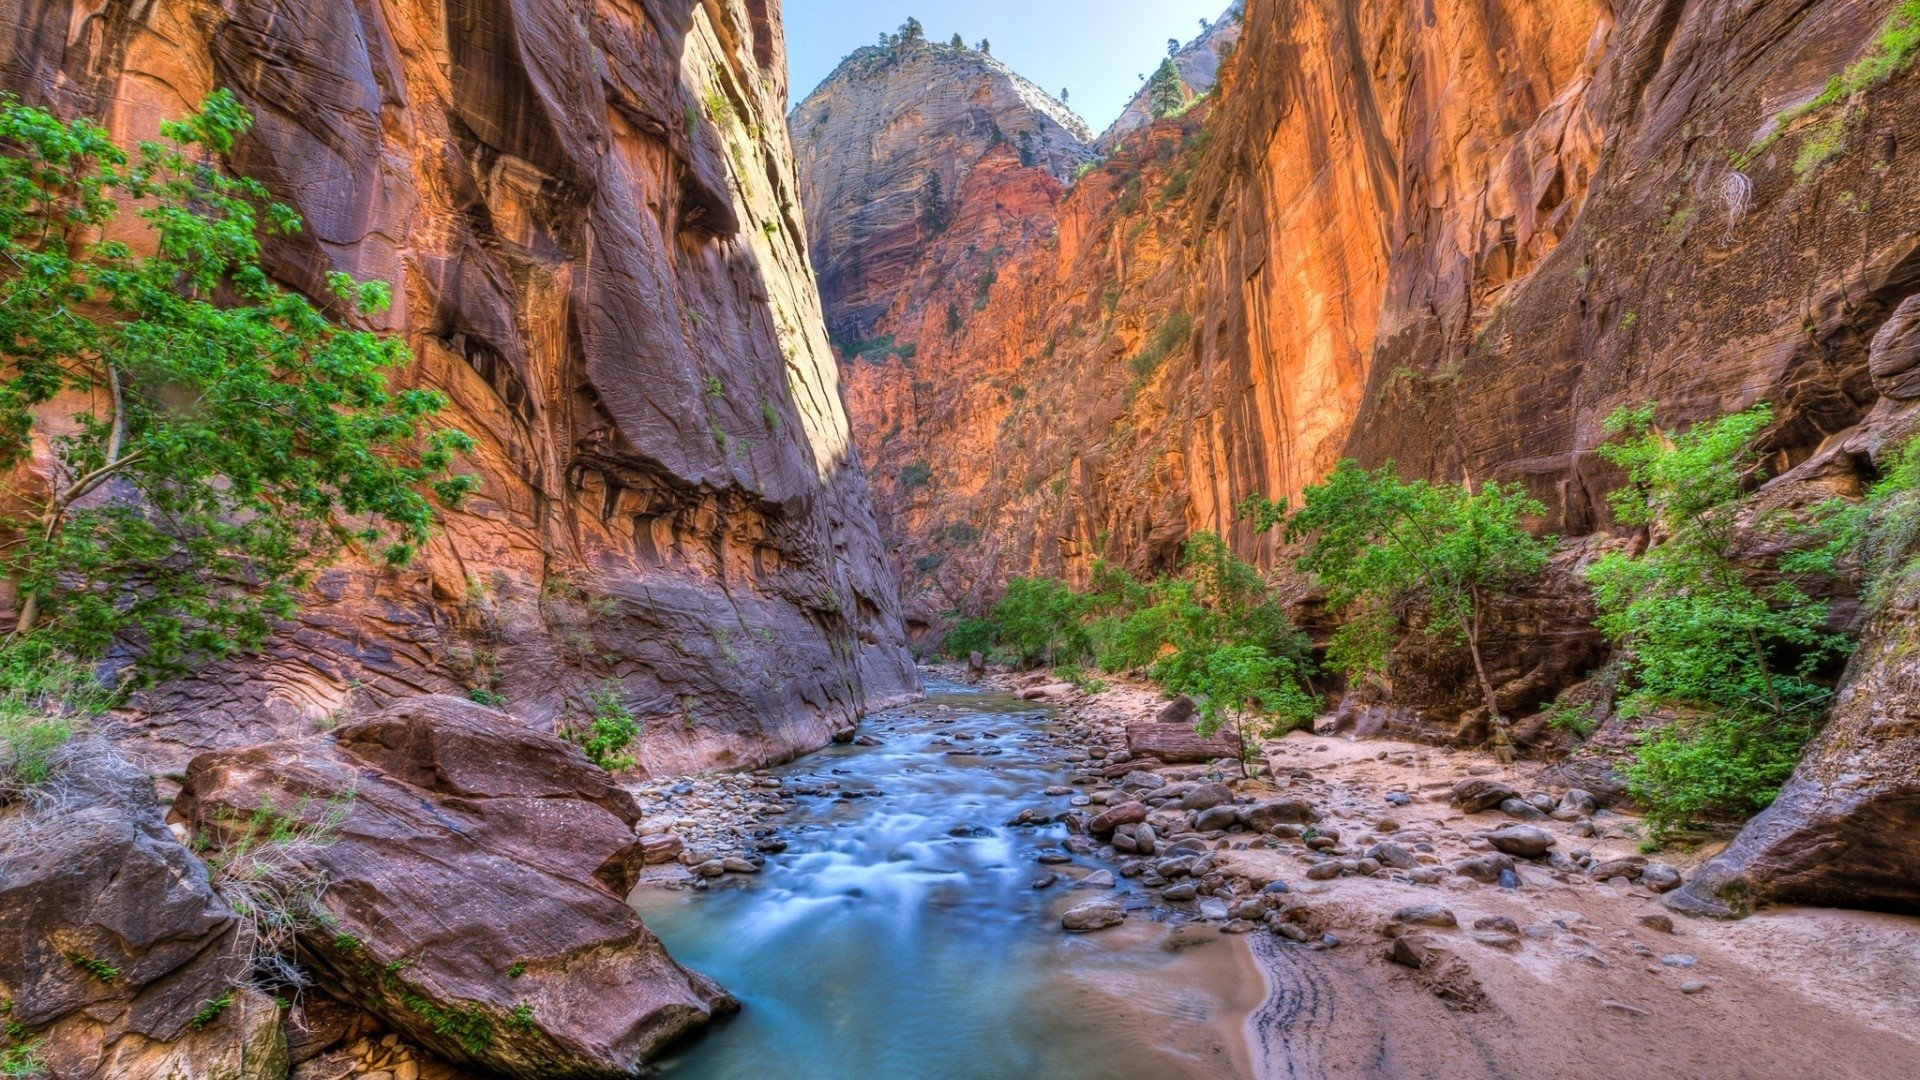 Zion National Park HD Wallpaper Zion National Park Wallpapers for 1920x1080